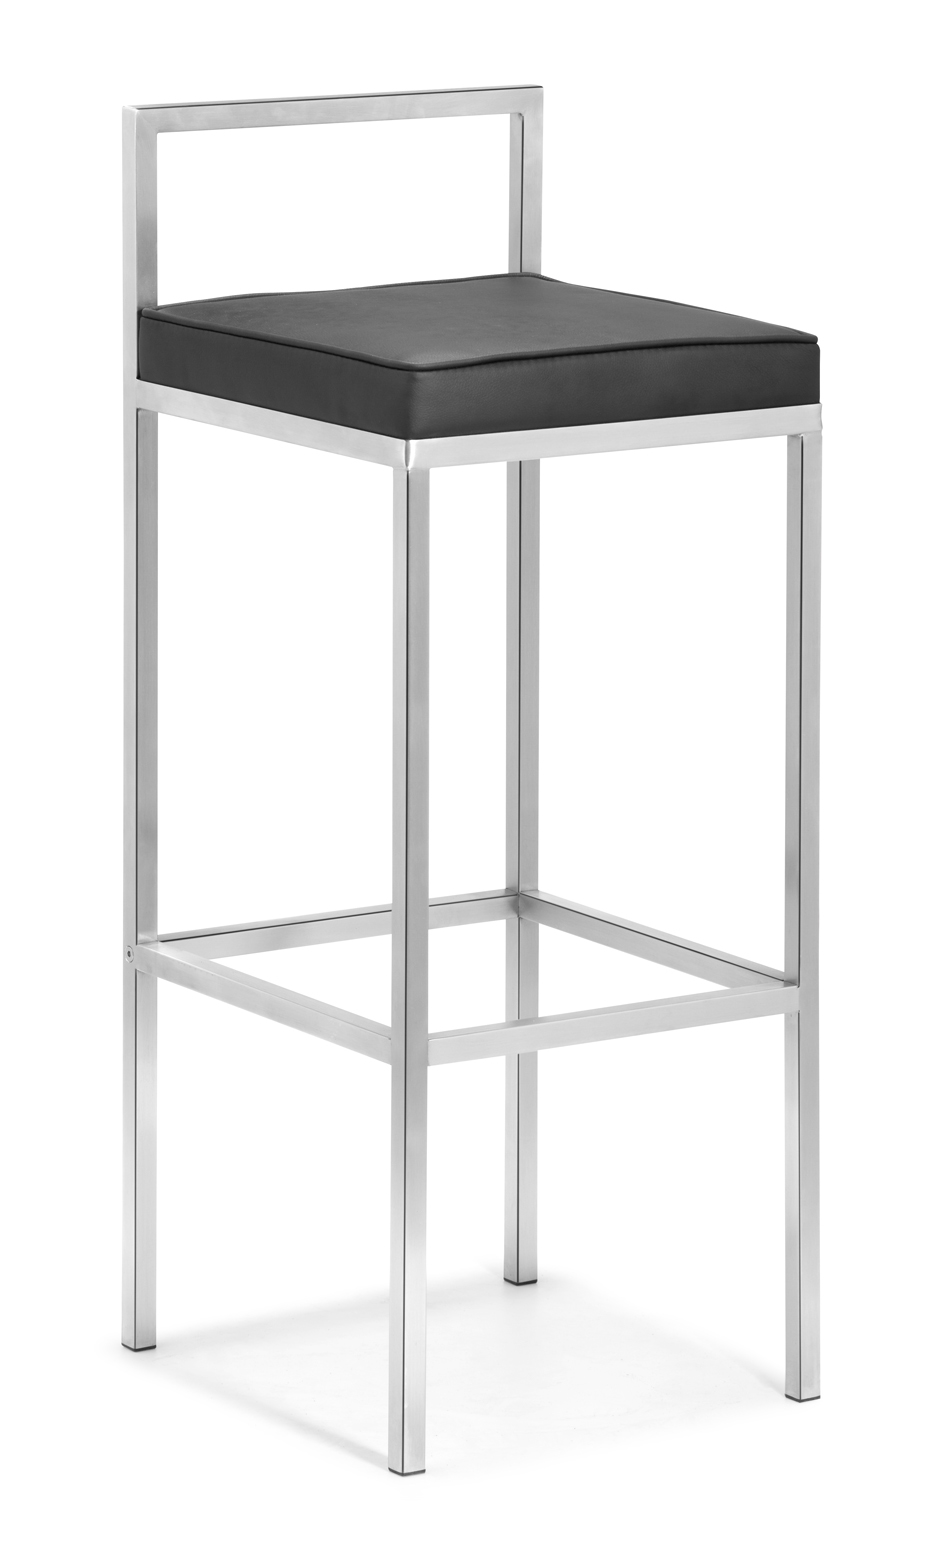 Fine Bar Stools New Collection 2011 Of Zuo Modern Bar Stools